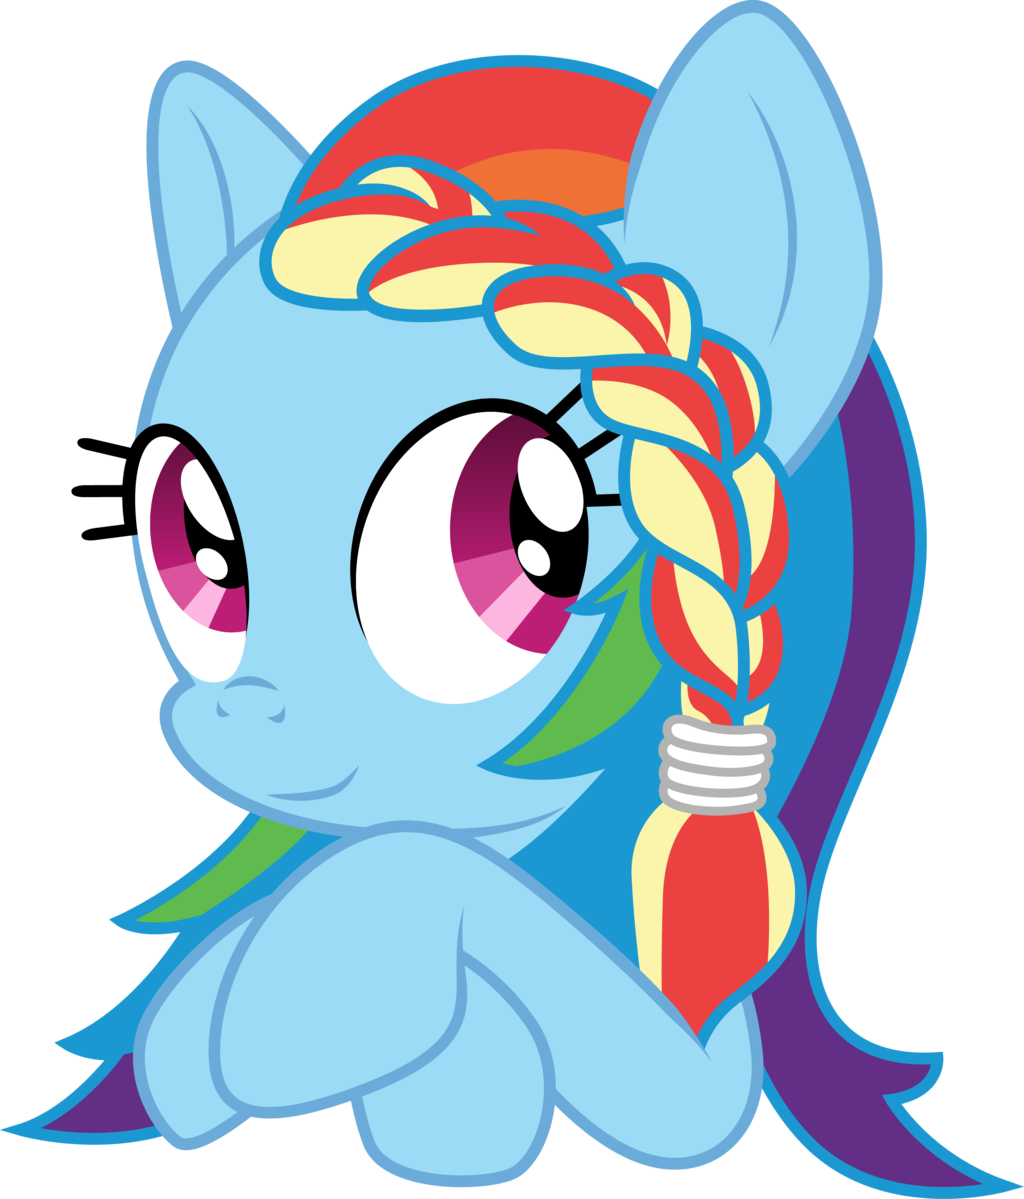 Braids vector animated. Braided dash by cloudyglow